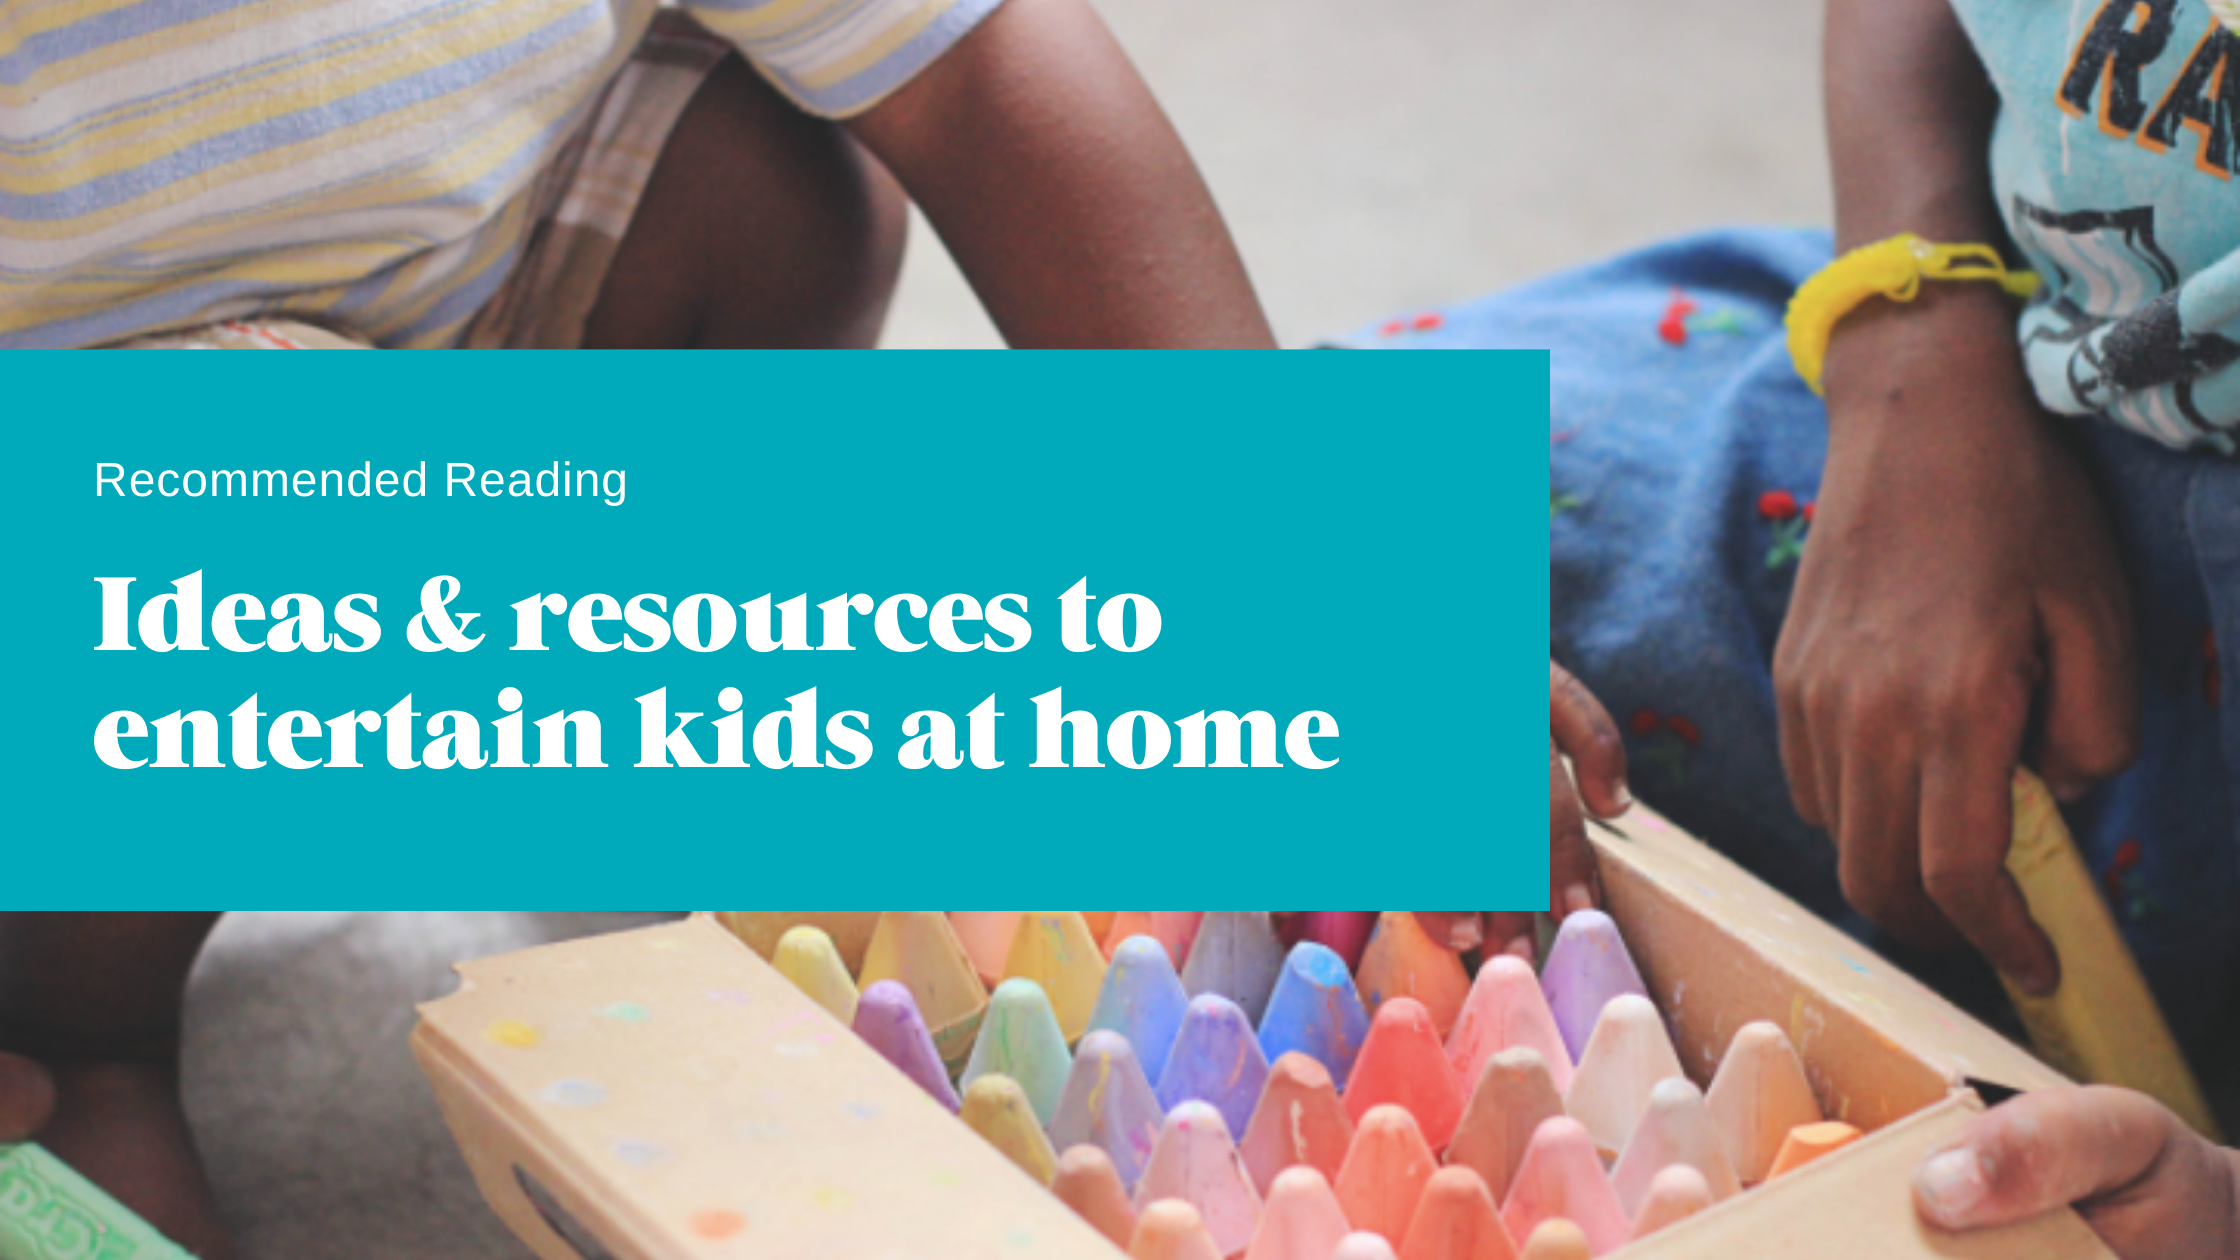 Recommended Reading: Ideas & Resources to entertain kids at home